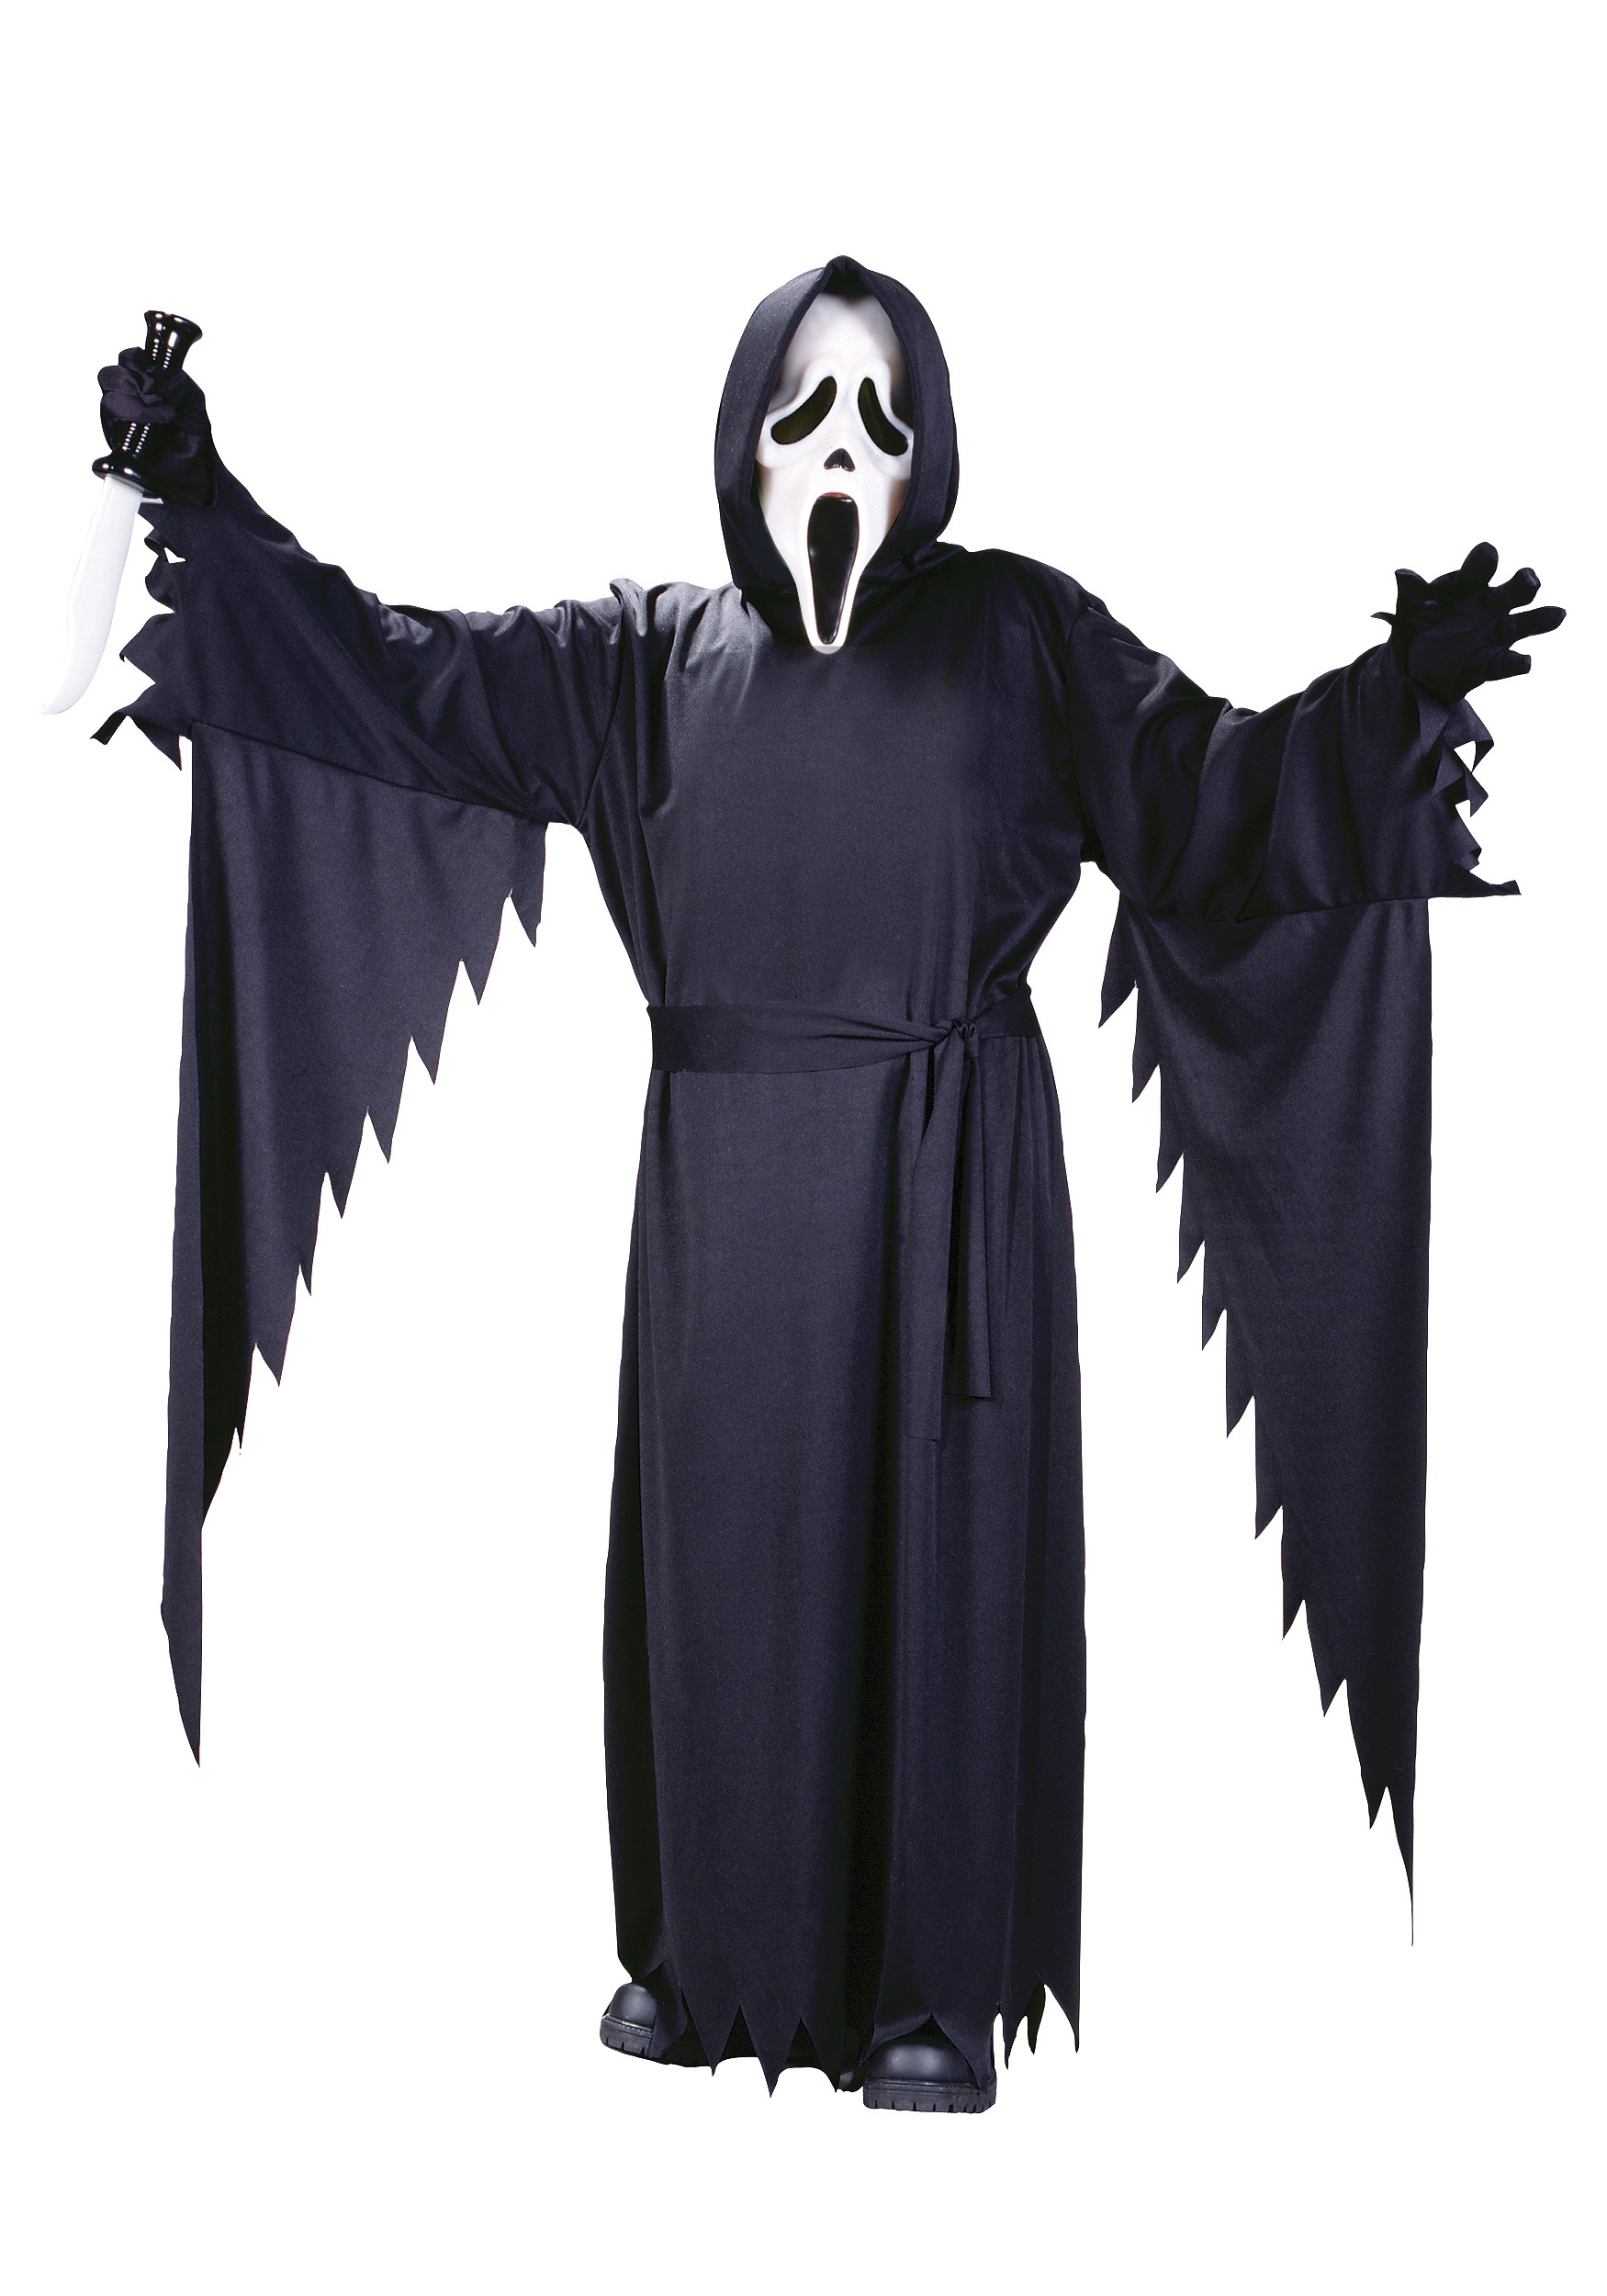 Scream Costumes - Adult, Kids Scream Movie Costume